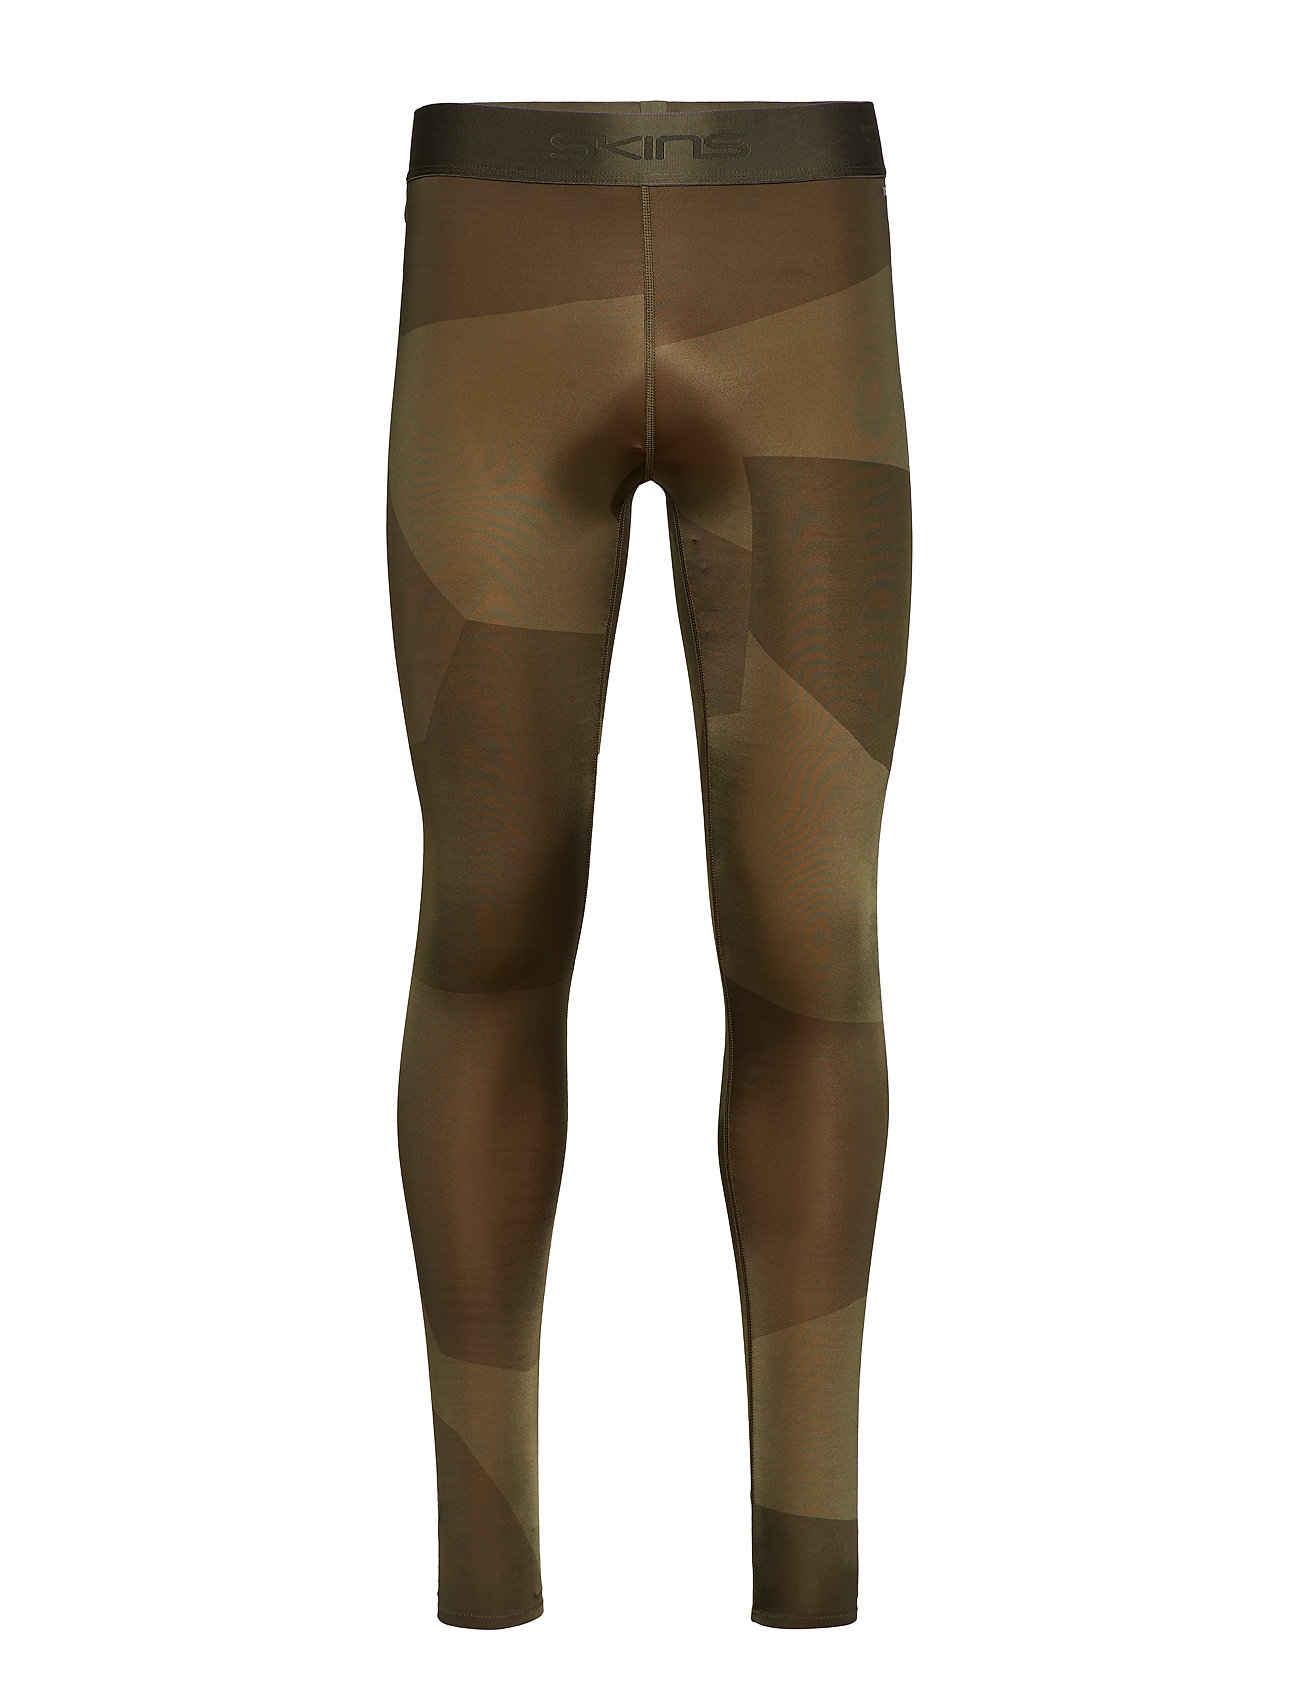 e82b9e6aa232c Dnamic Primary Mens Long Tights (Deconstructed Camo Utility) (449.50 ...